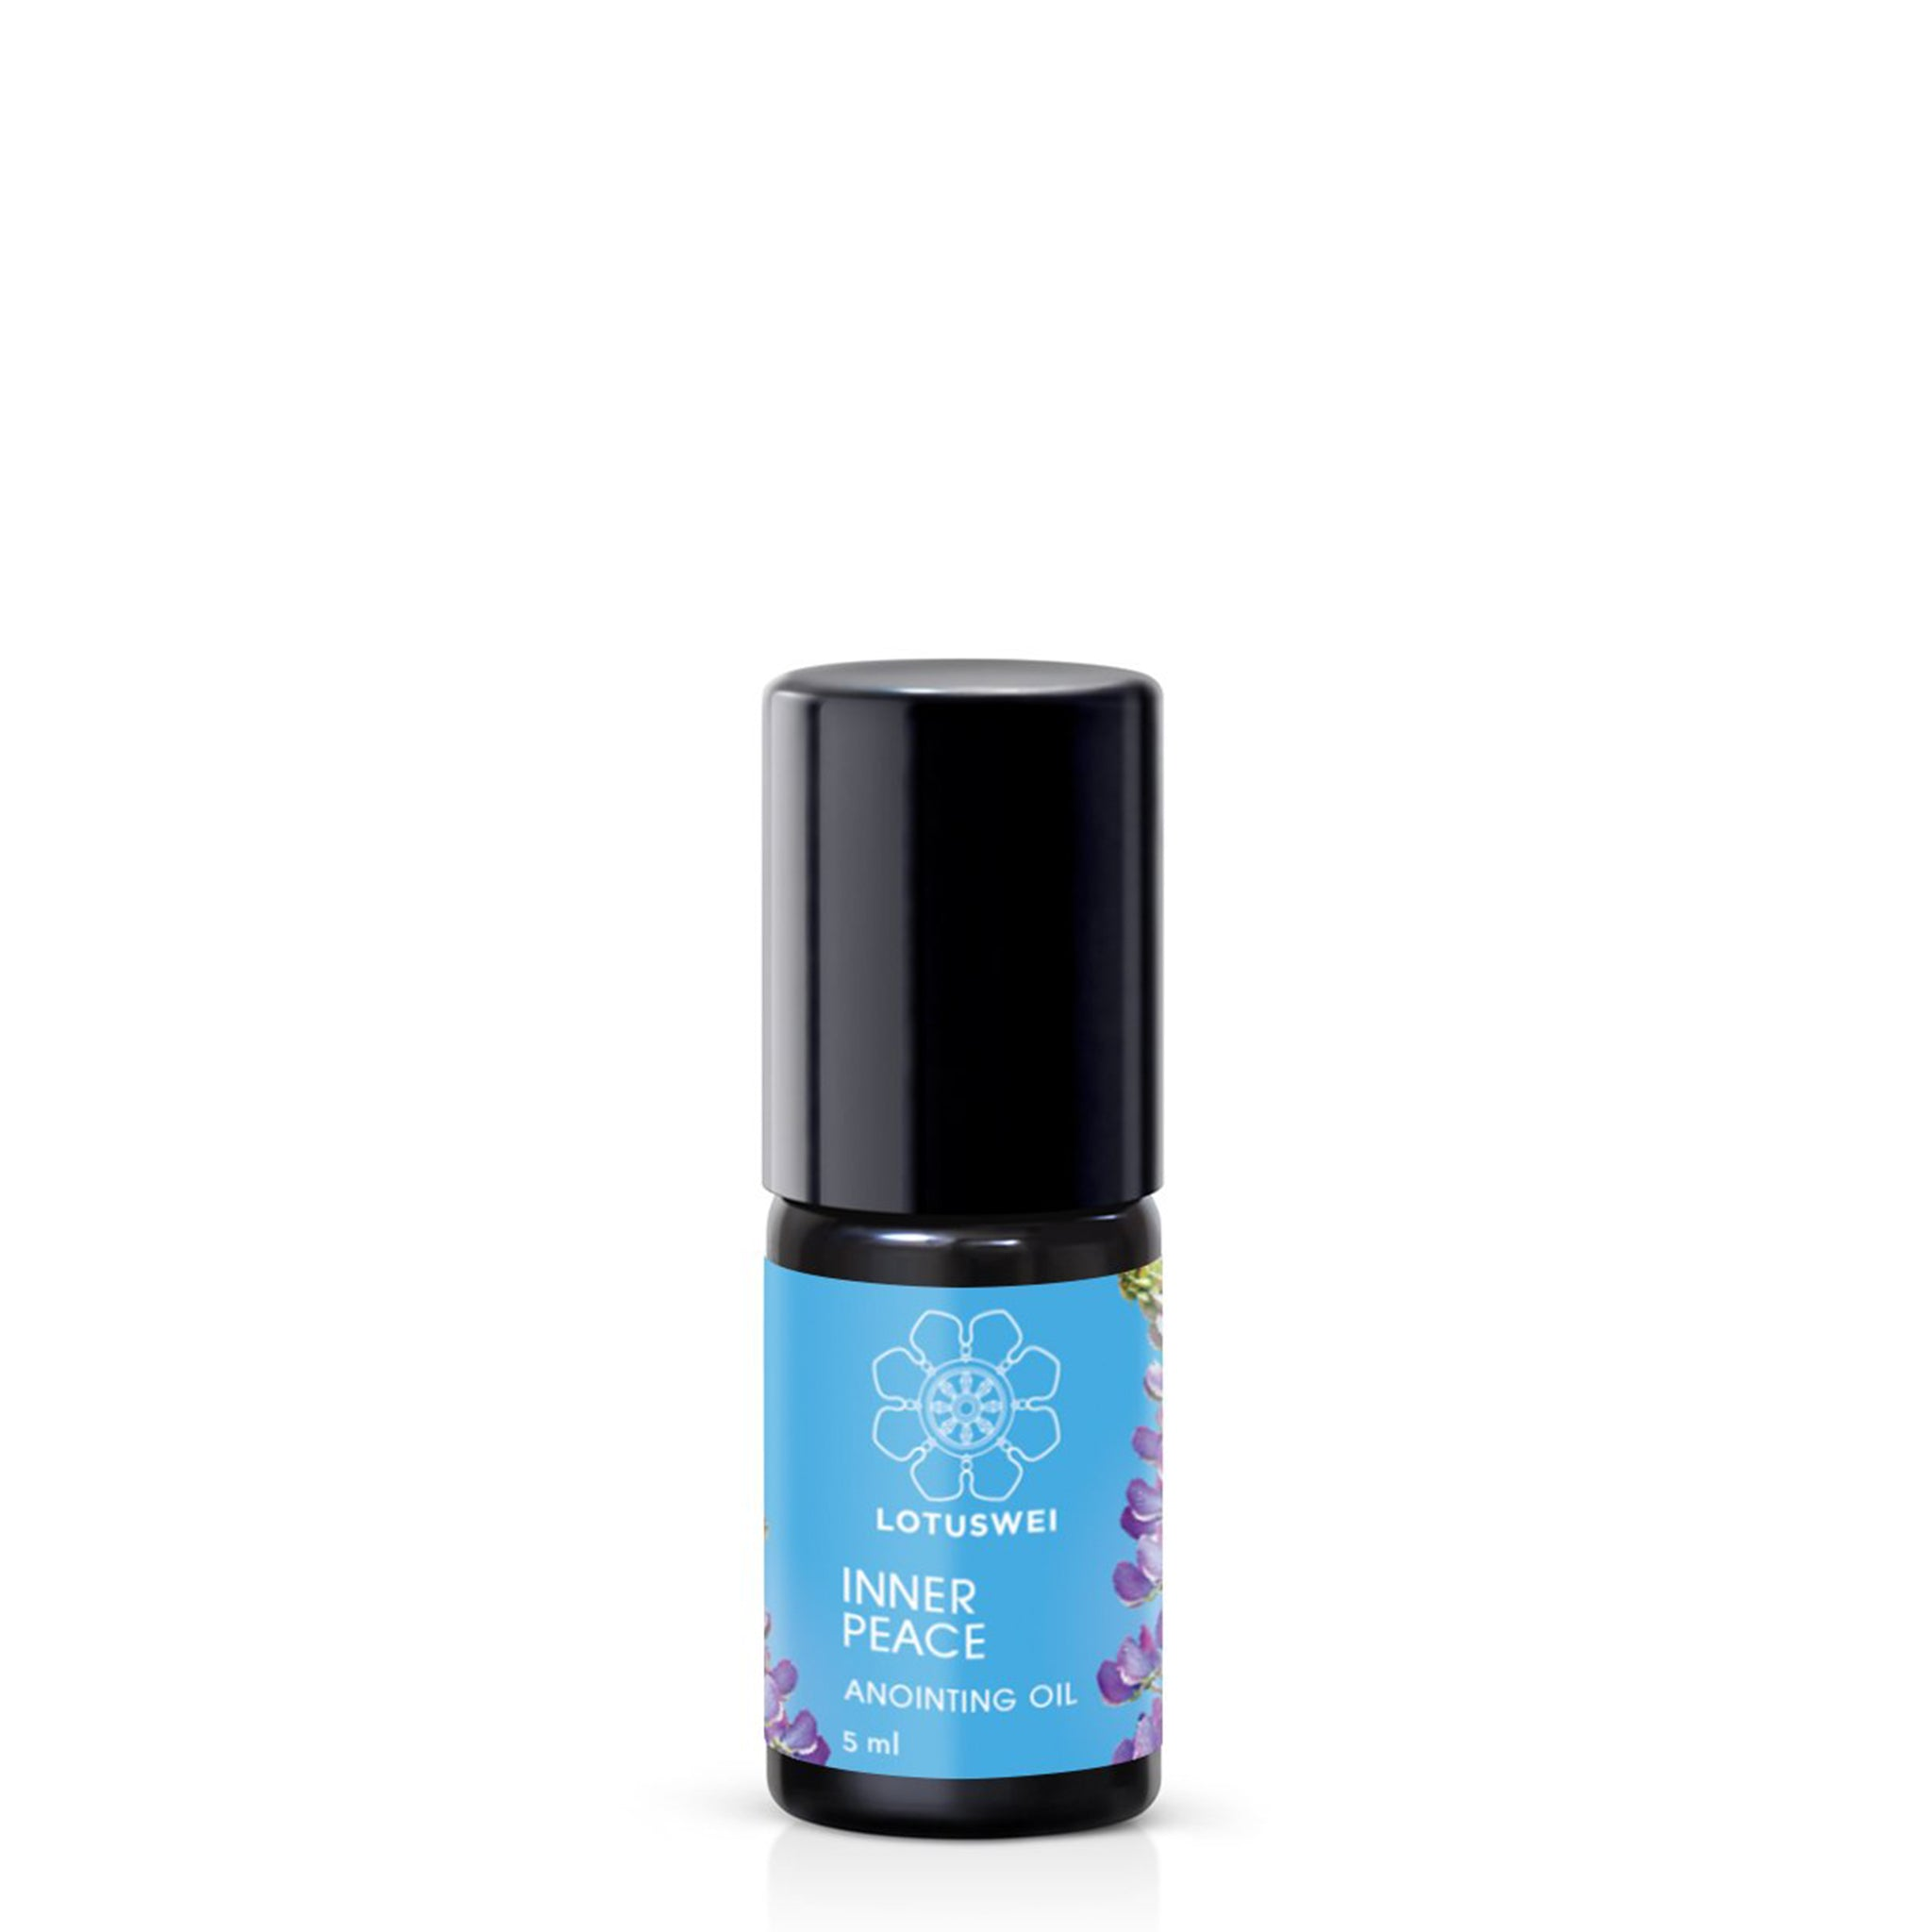 Inner Peace Anointing Oil